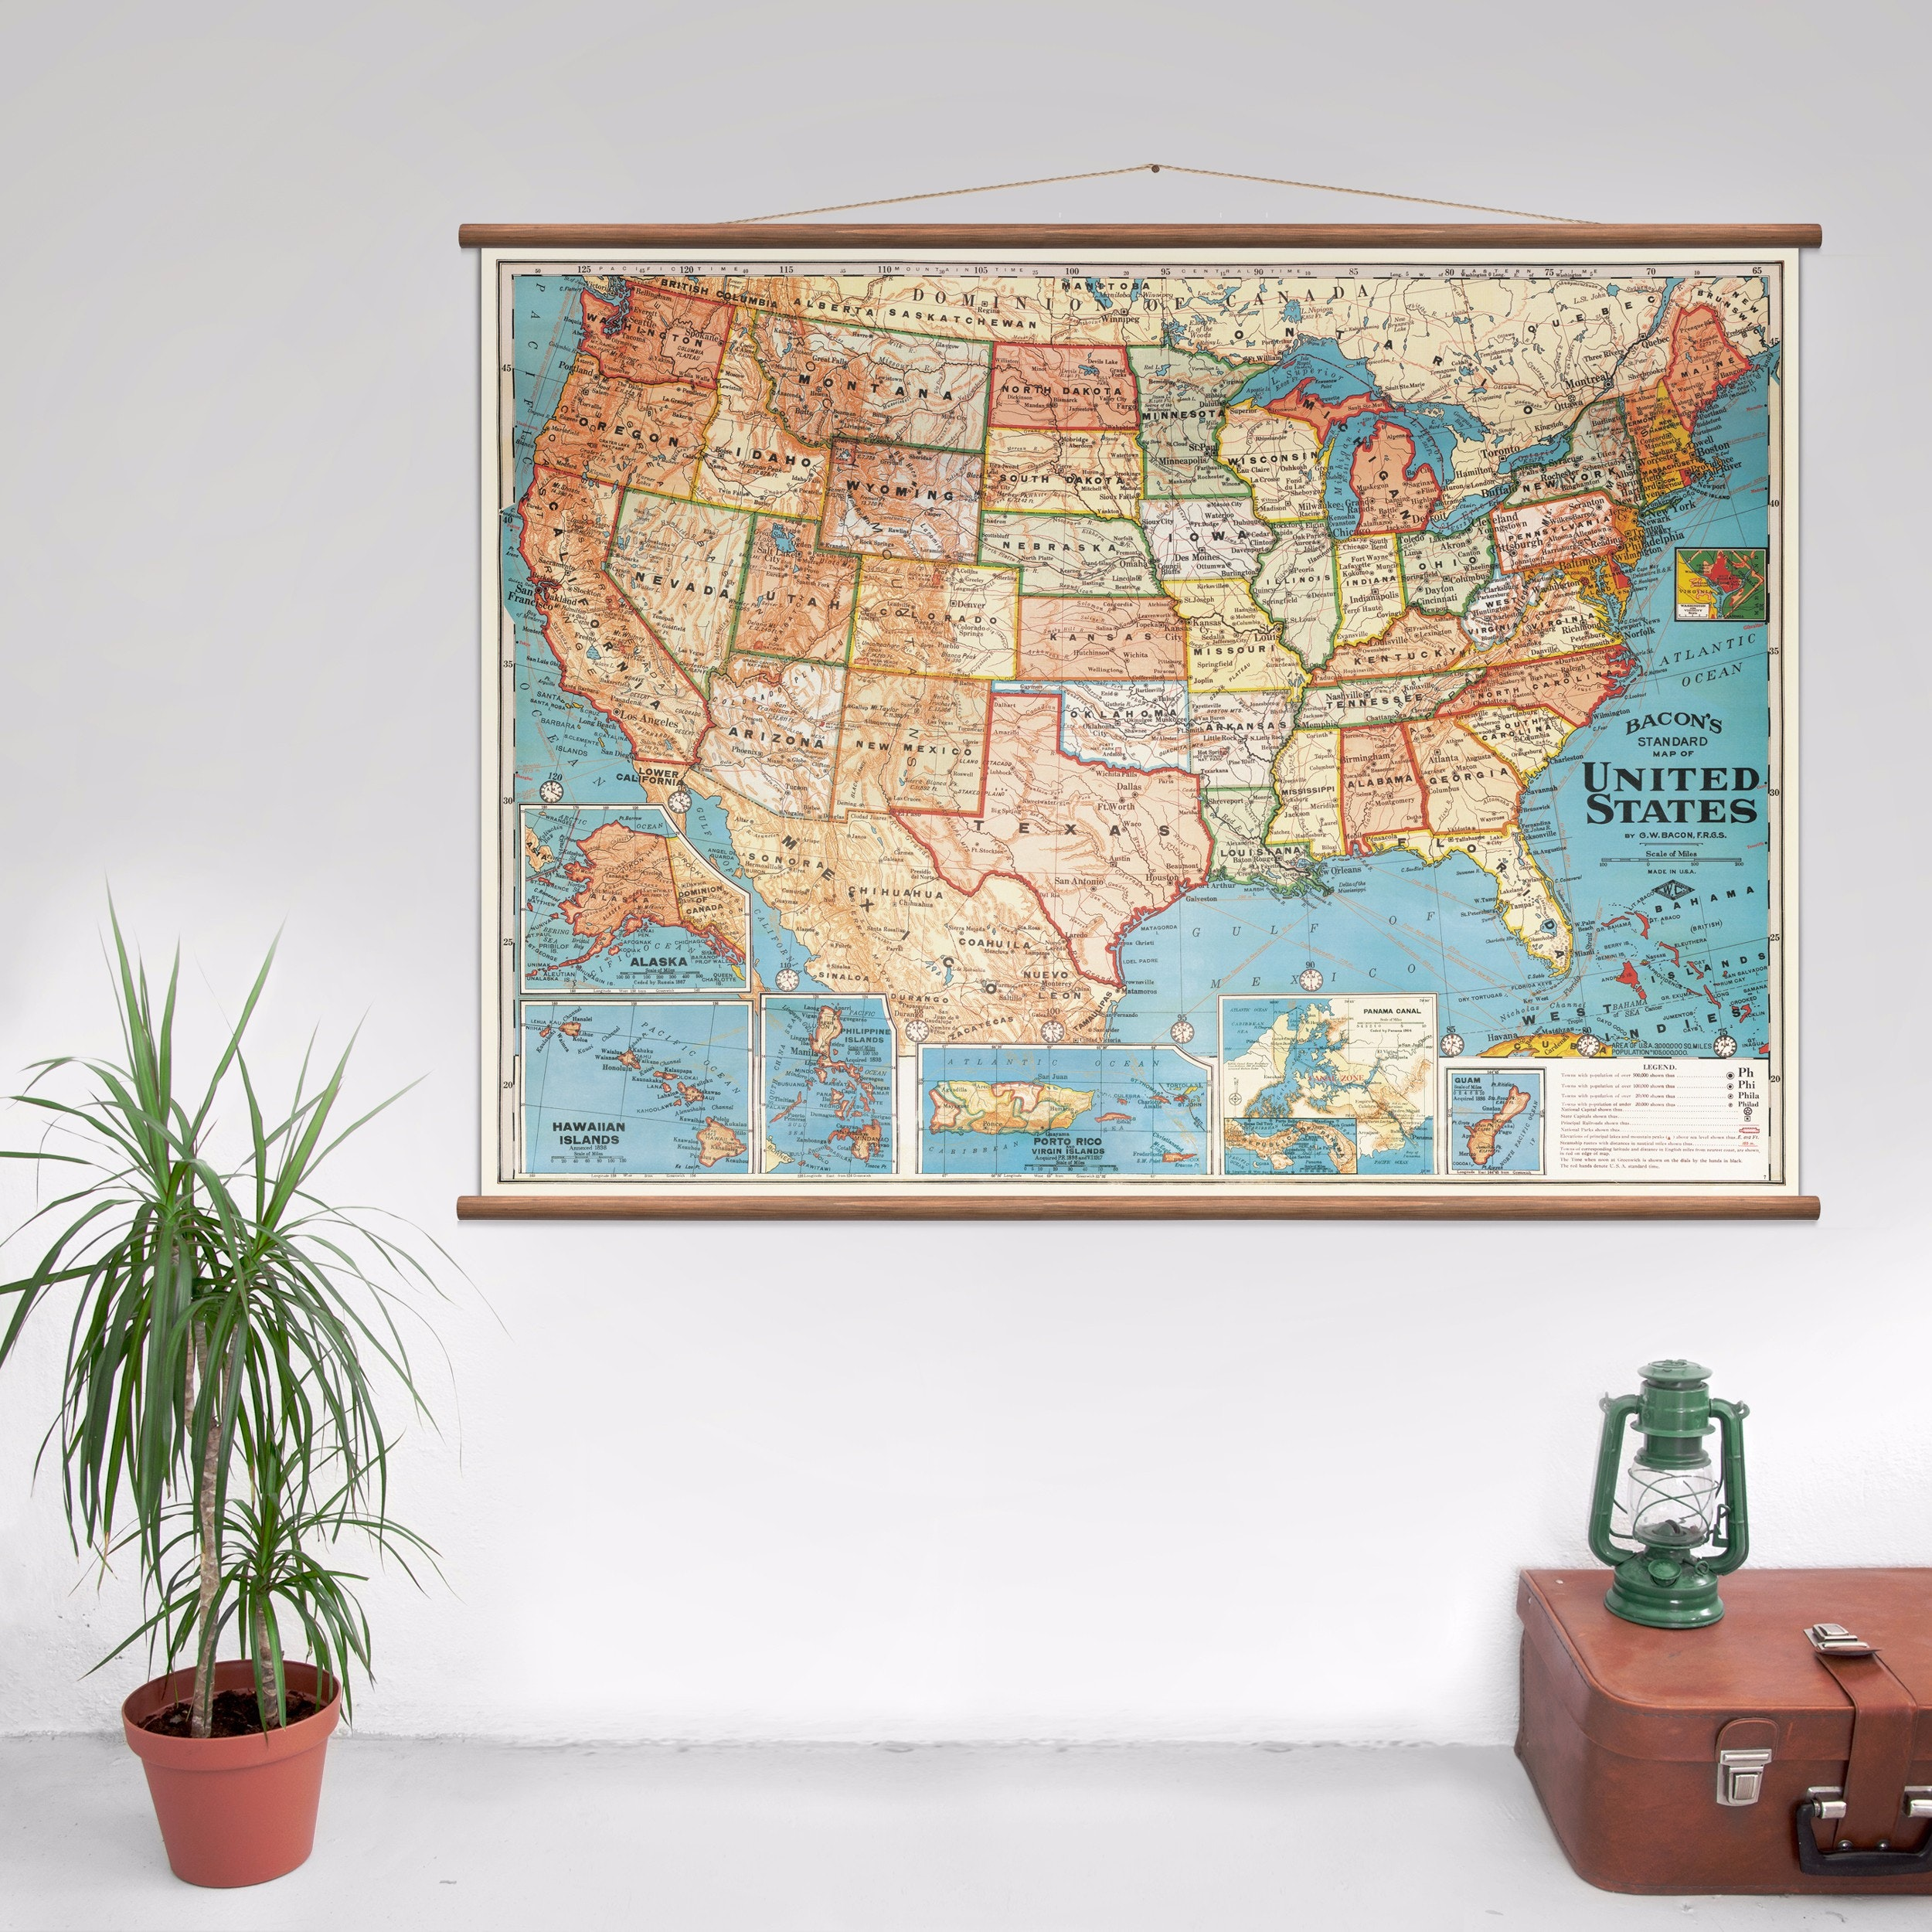 Map of the United States Art Print United States Map To Print on world map to print, nevada map to print, miami map to print, arizona map to print, jamaica map to print, belize map to print, katy trail map to print, united states print out, south carolina map to print, missouri map to print, denver map to print, seattle map to print, canada map to print, american revolution map to print, new york map to print, argentina map to print, wisconsin map to print, ukraine map to print, colorado map to print, nicaragua map to print,